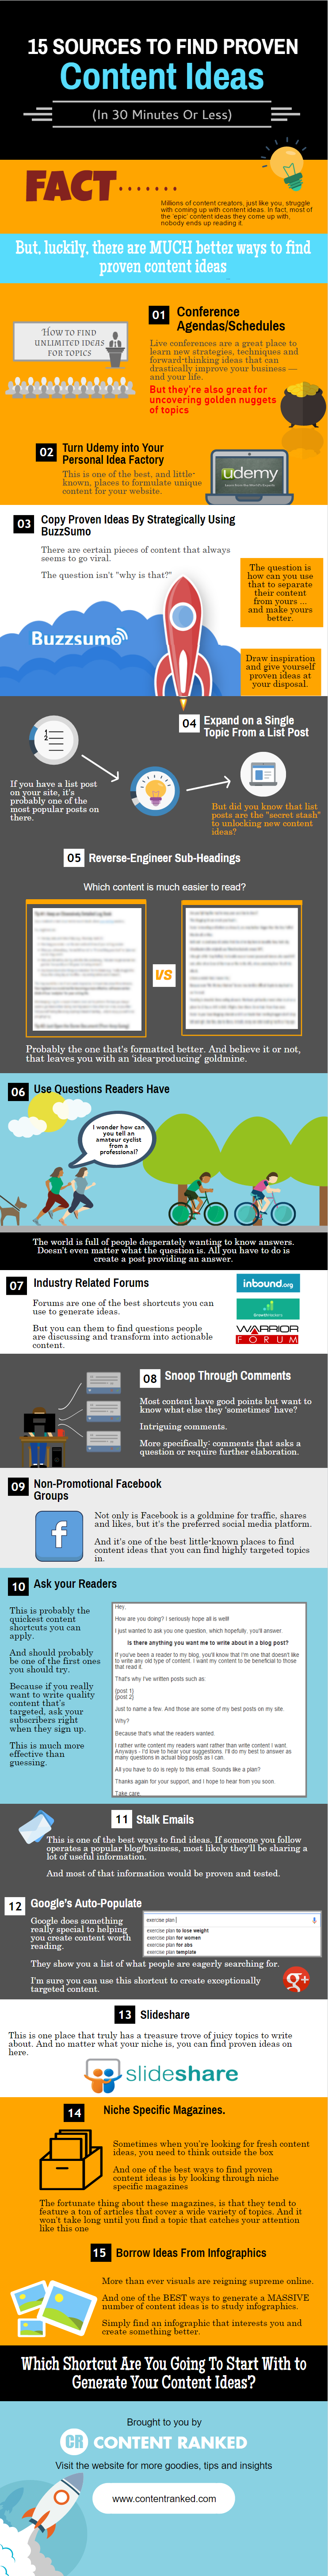 15 Actionable Shortcuts to Find Proven Blog Post Ideas [Infographic]